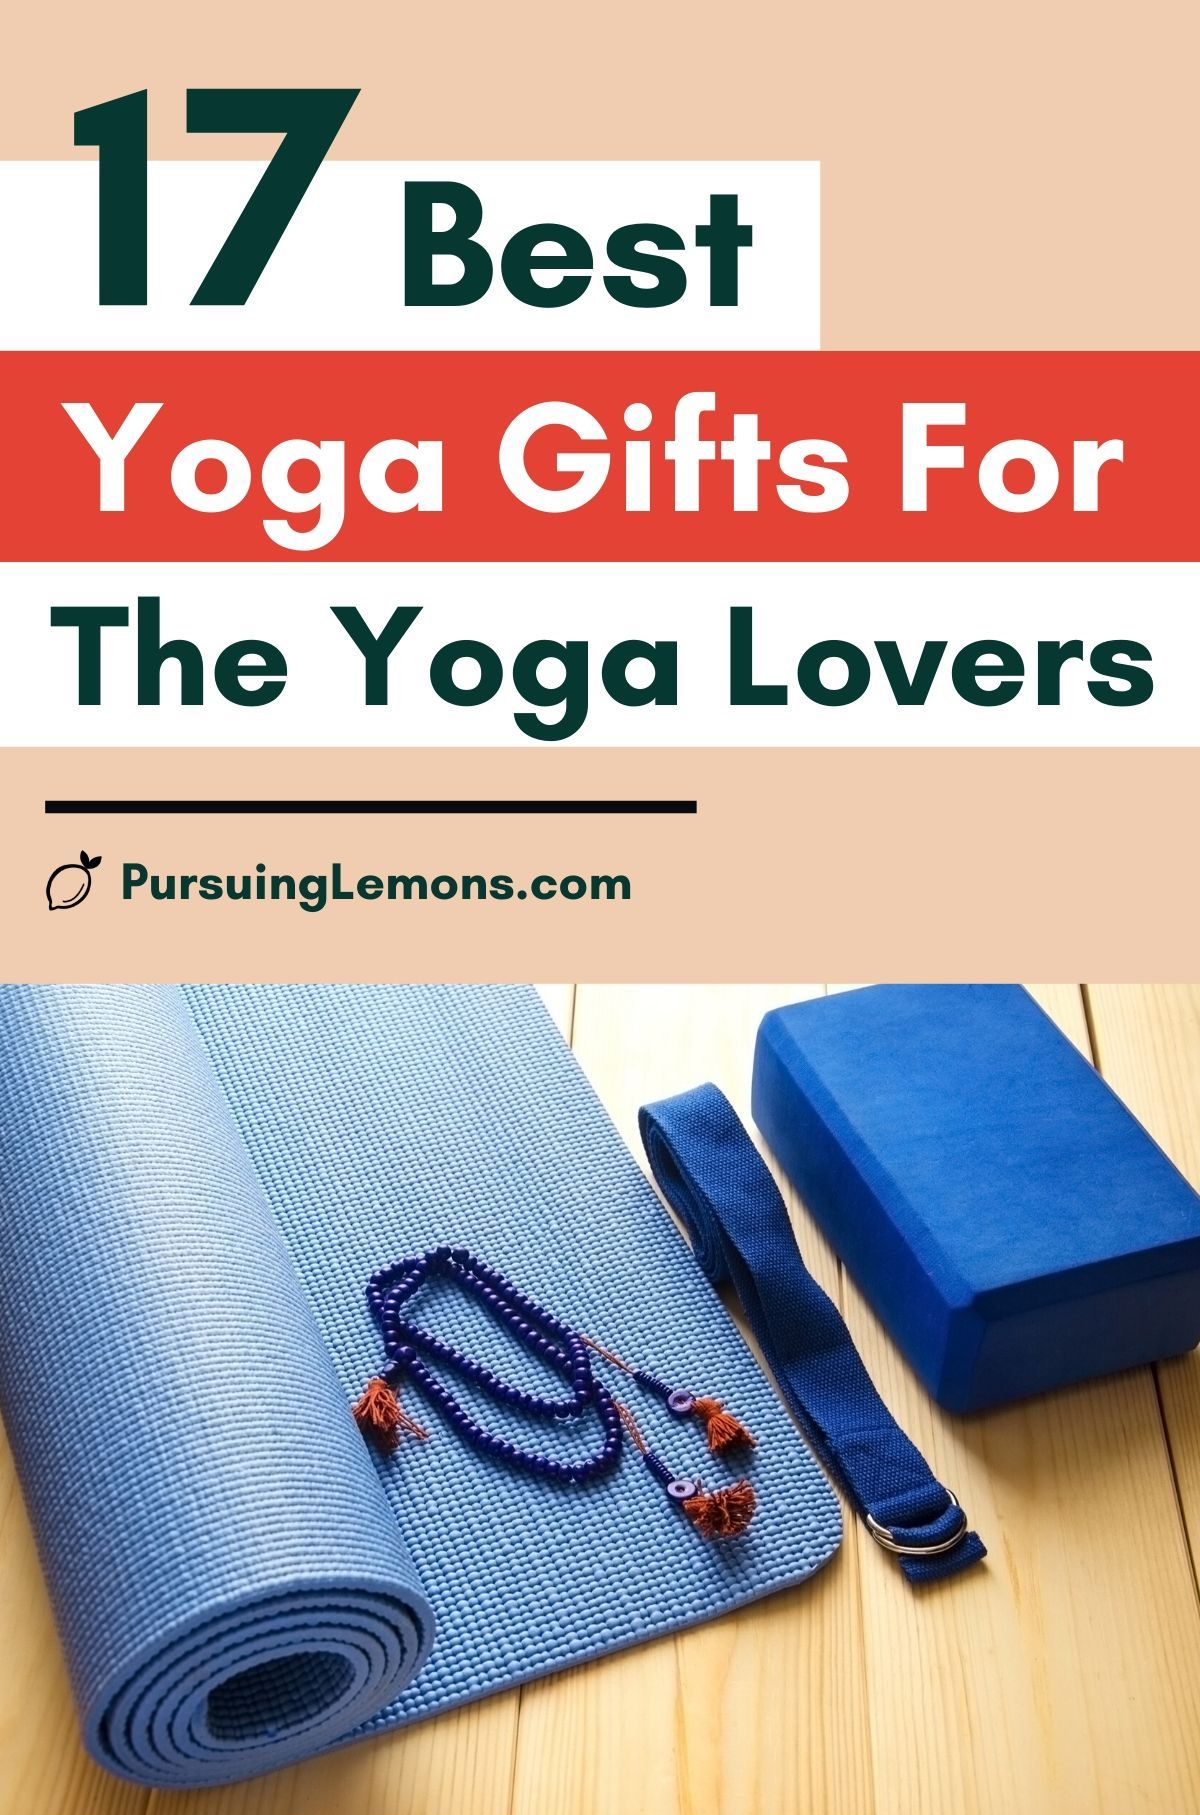 Best Yoga Gifts for the Yoga Lovers in Your Life : gifts for yoga, yoga gifts ideas, yoga accessories gift ideas, yogi gift ideas, gift idea for yoga lover.  If you're looking for a gift for yoga lover, start with this list of yoga gift ideas! You may just find the perfect yoga presents in this yoga gift guide. #yogagifts #yogagiftideas #yogapresents